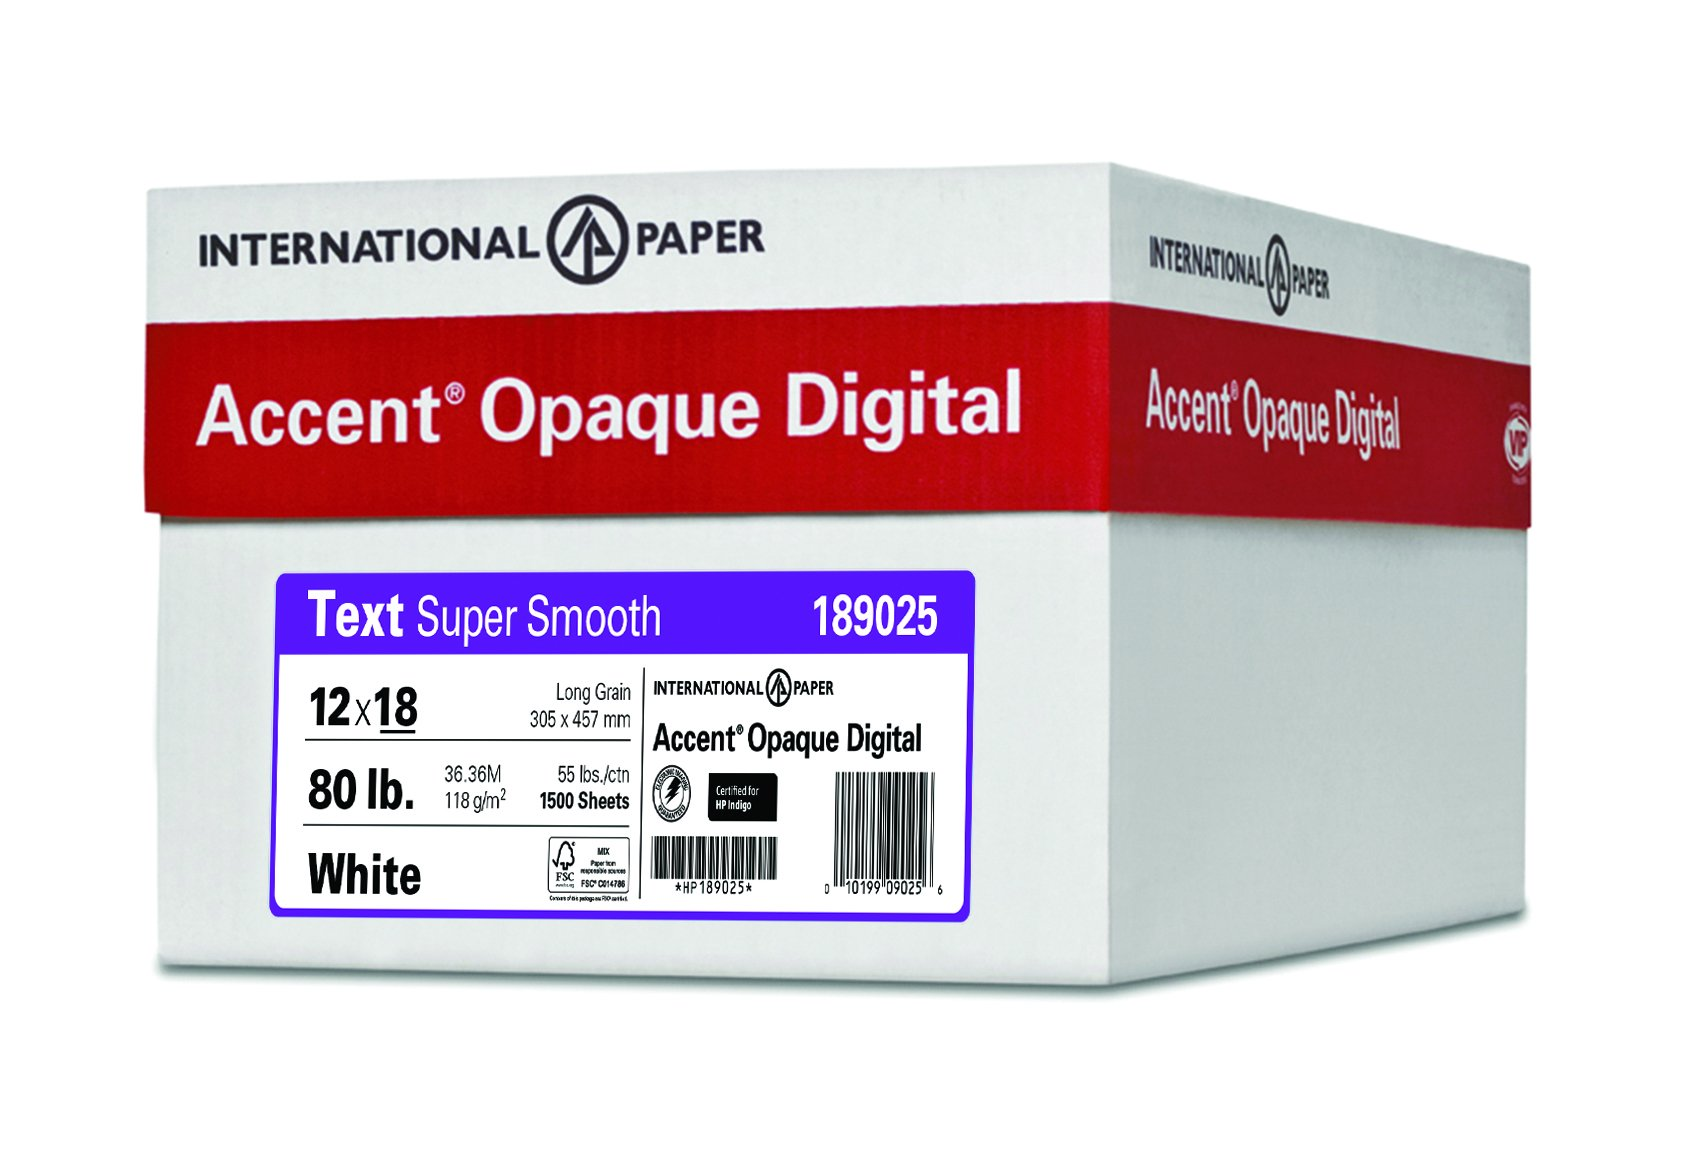 Accent Opaque, Super Smooth White 32lb / 80lb, 12 x 18, 97 Bright, 1,500 Sheets / 5 Ream Case, (189025C) Made in The USA